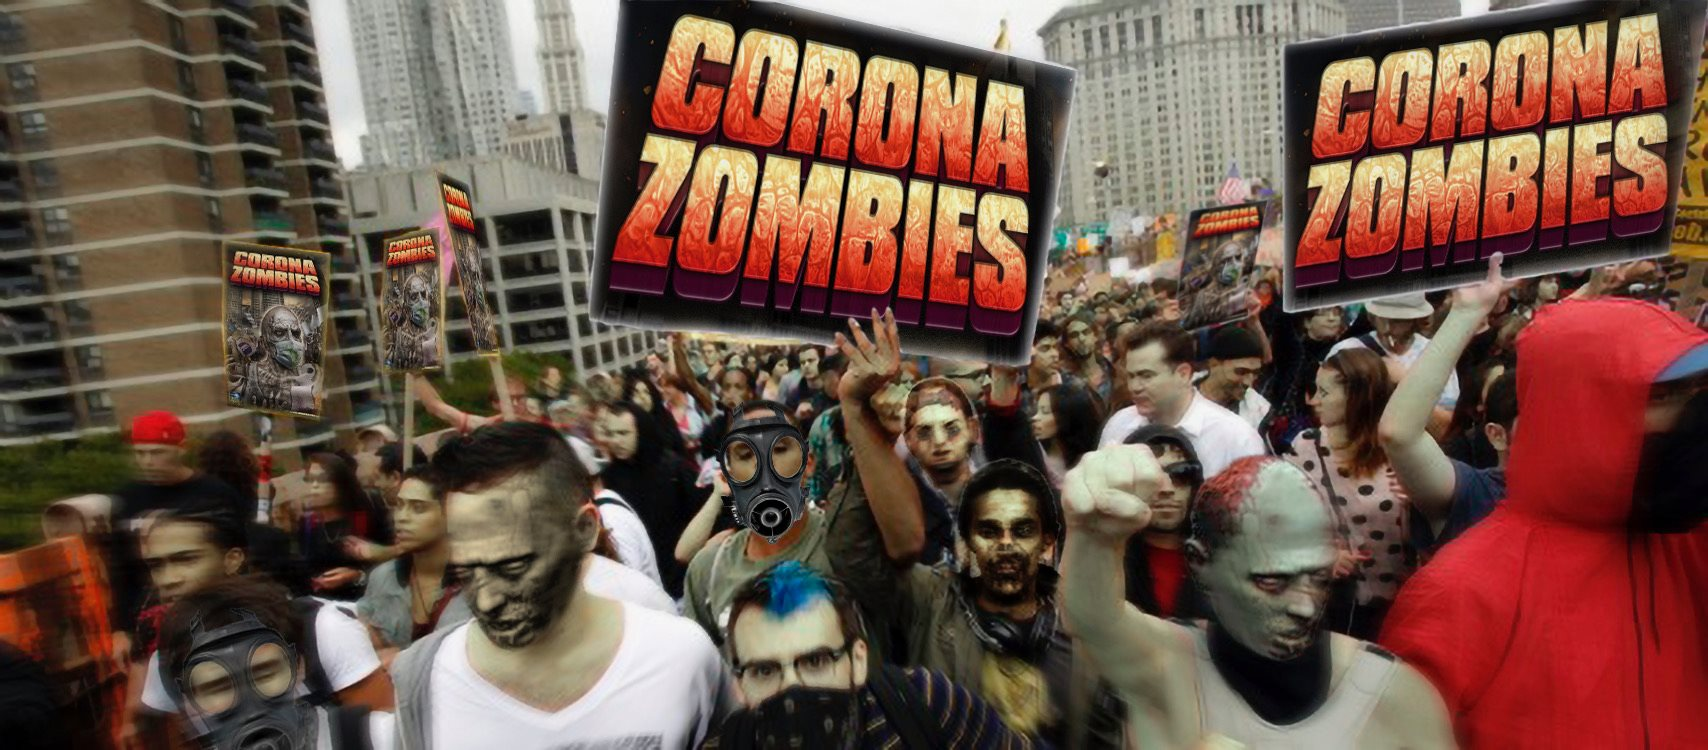 Corona Zombies from Full Moon Features